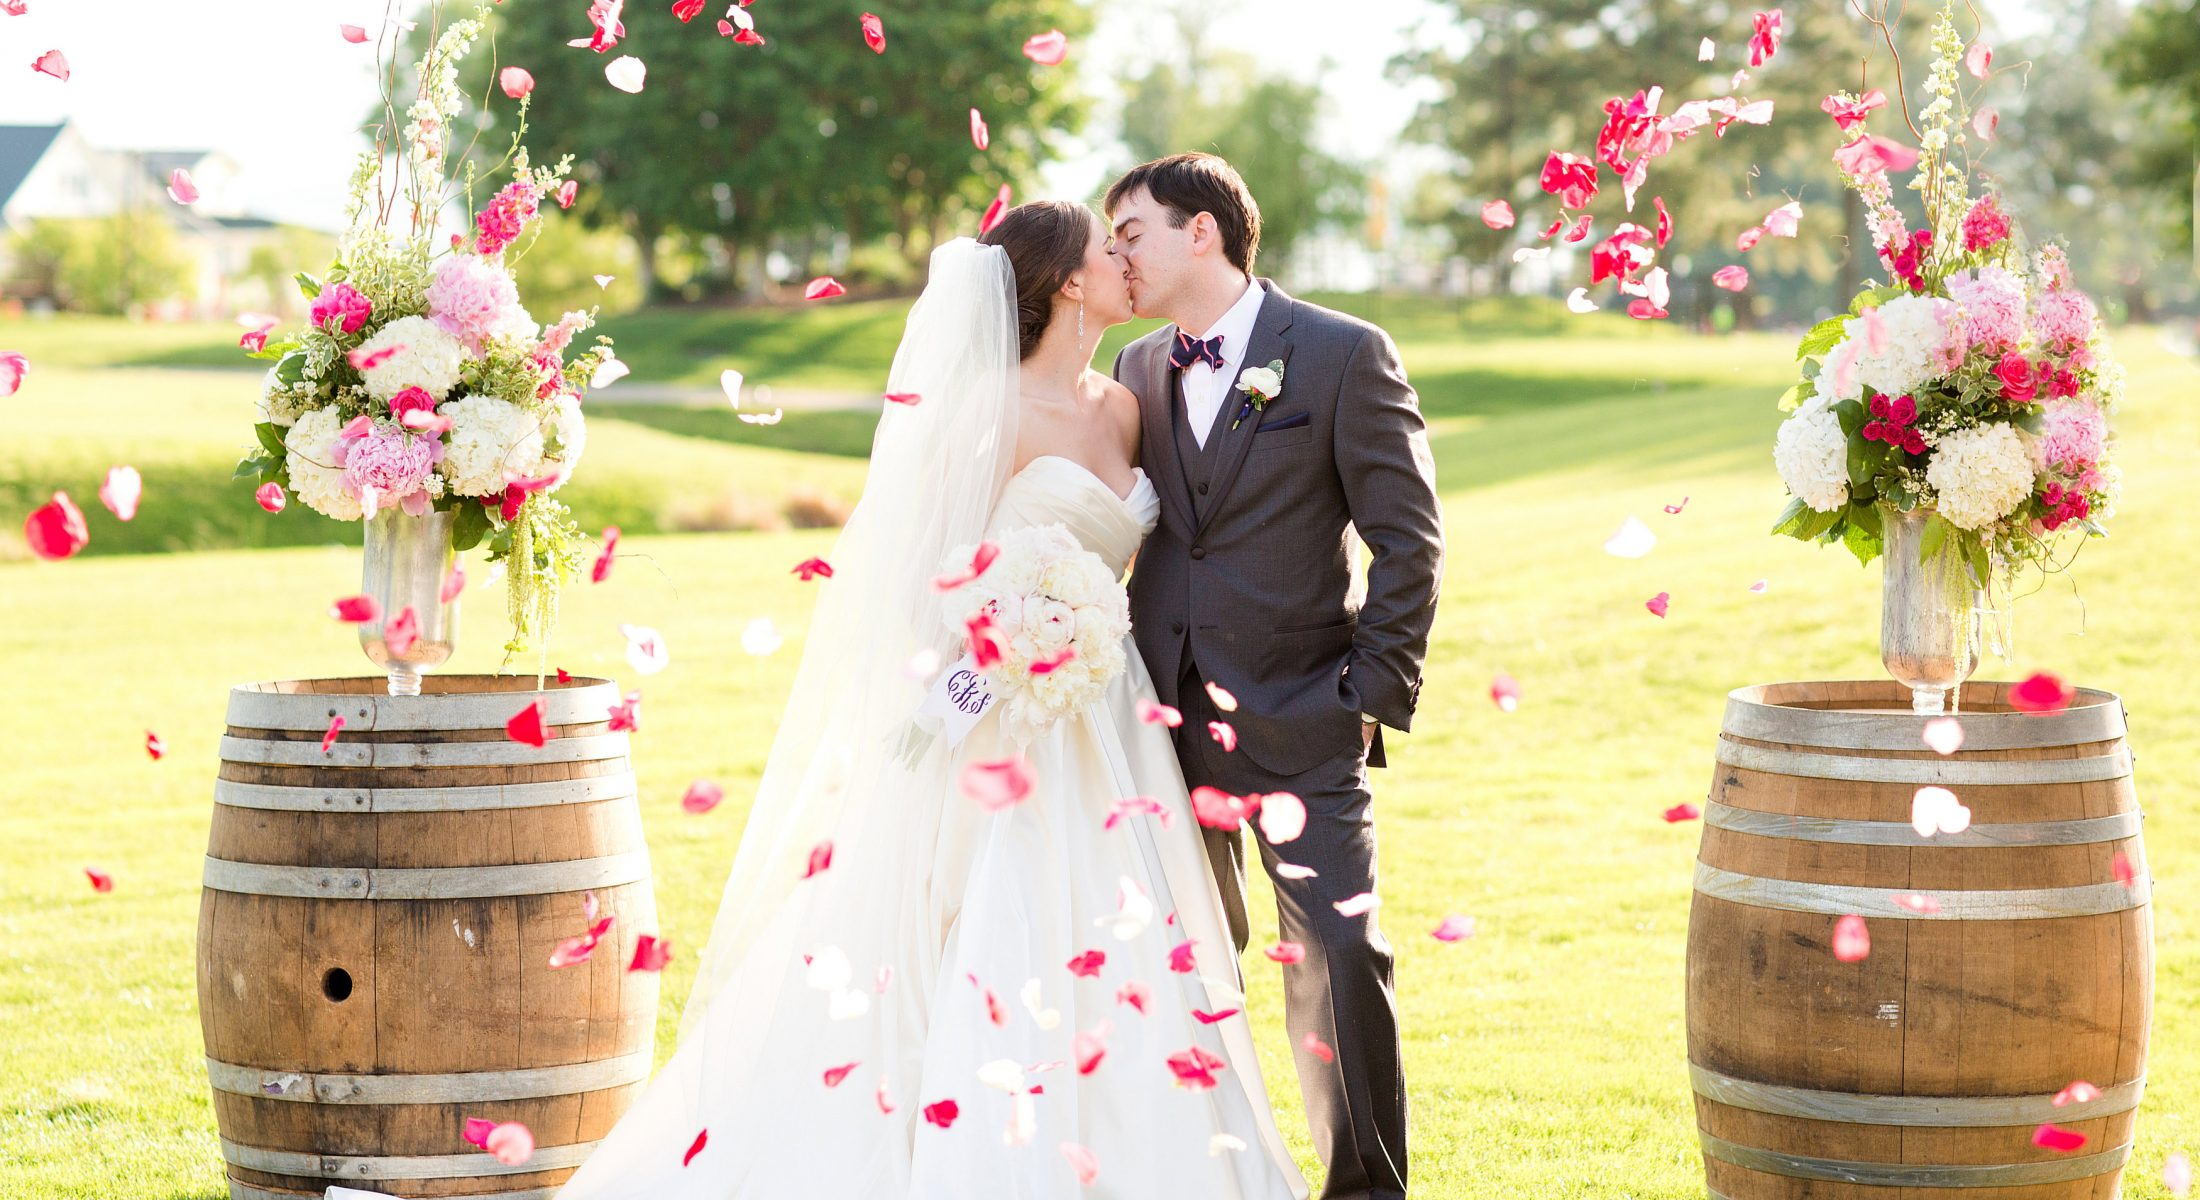 Wedding Couple with Flower Pedals Flying Around Them